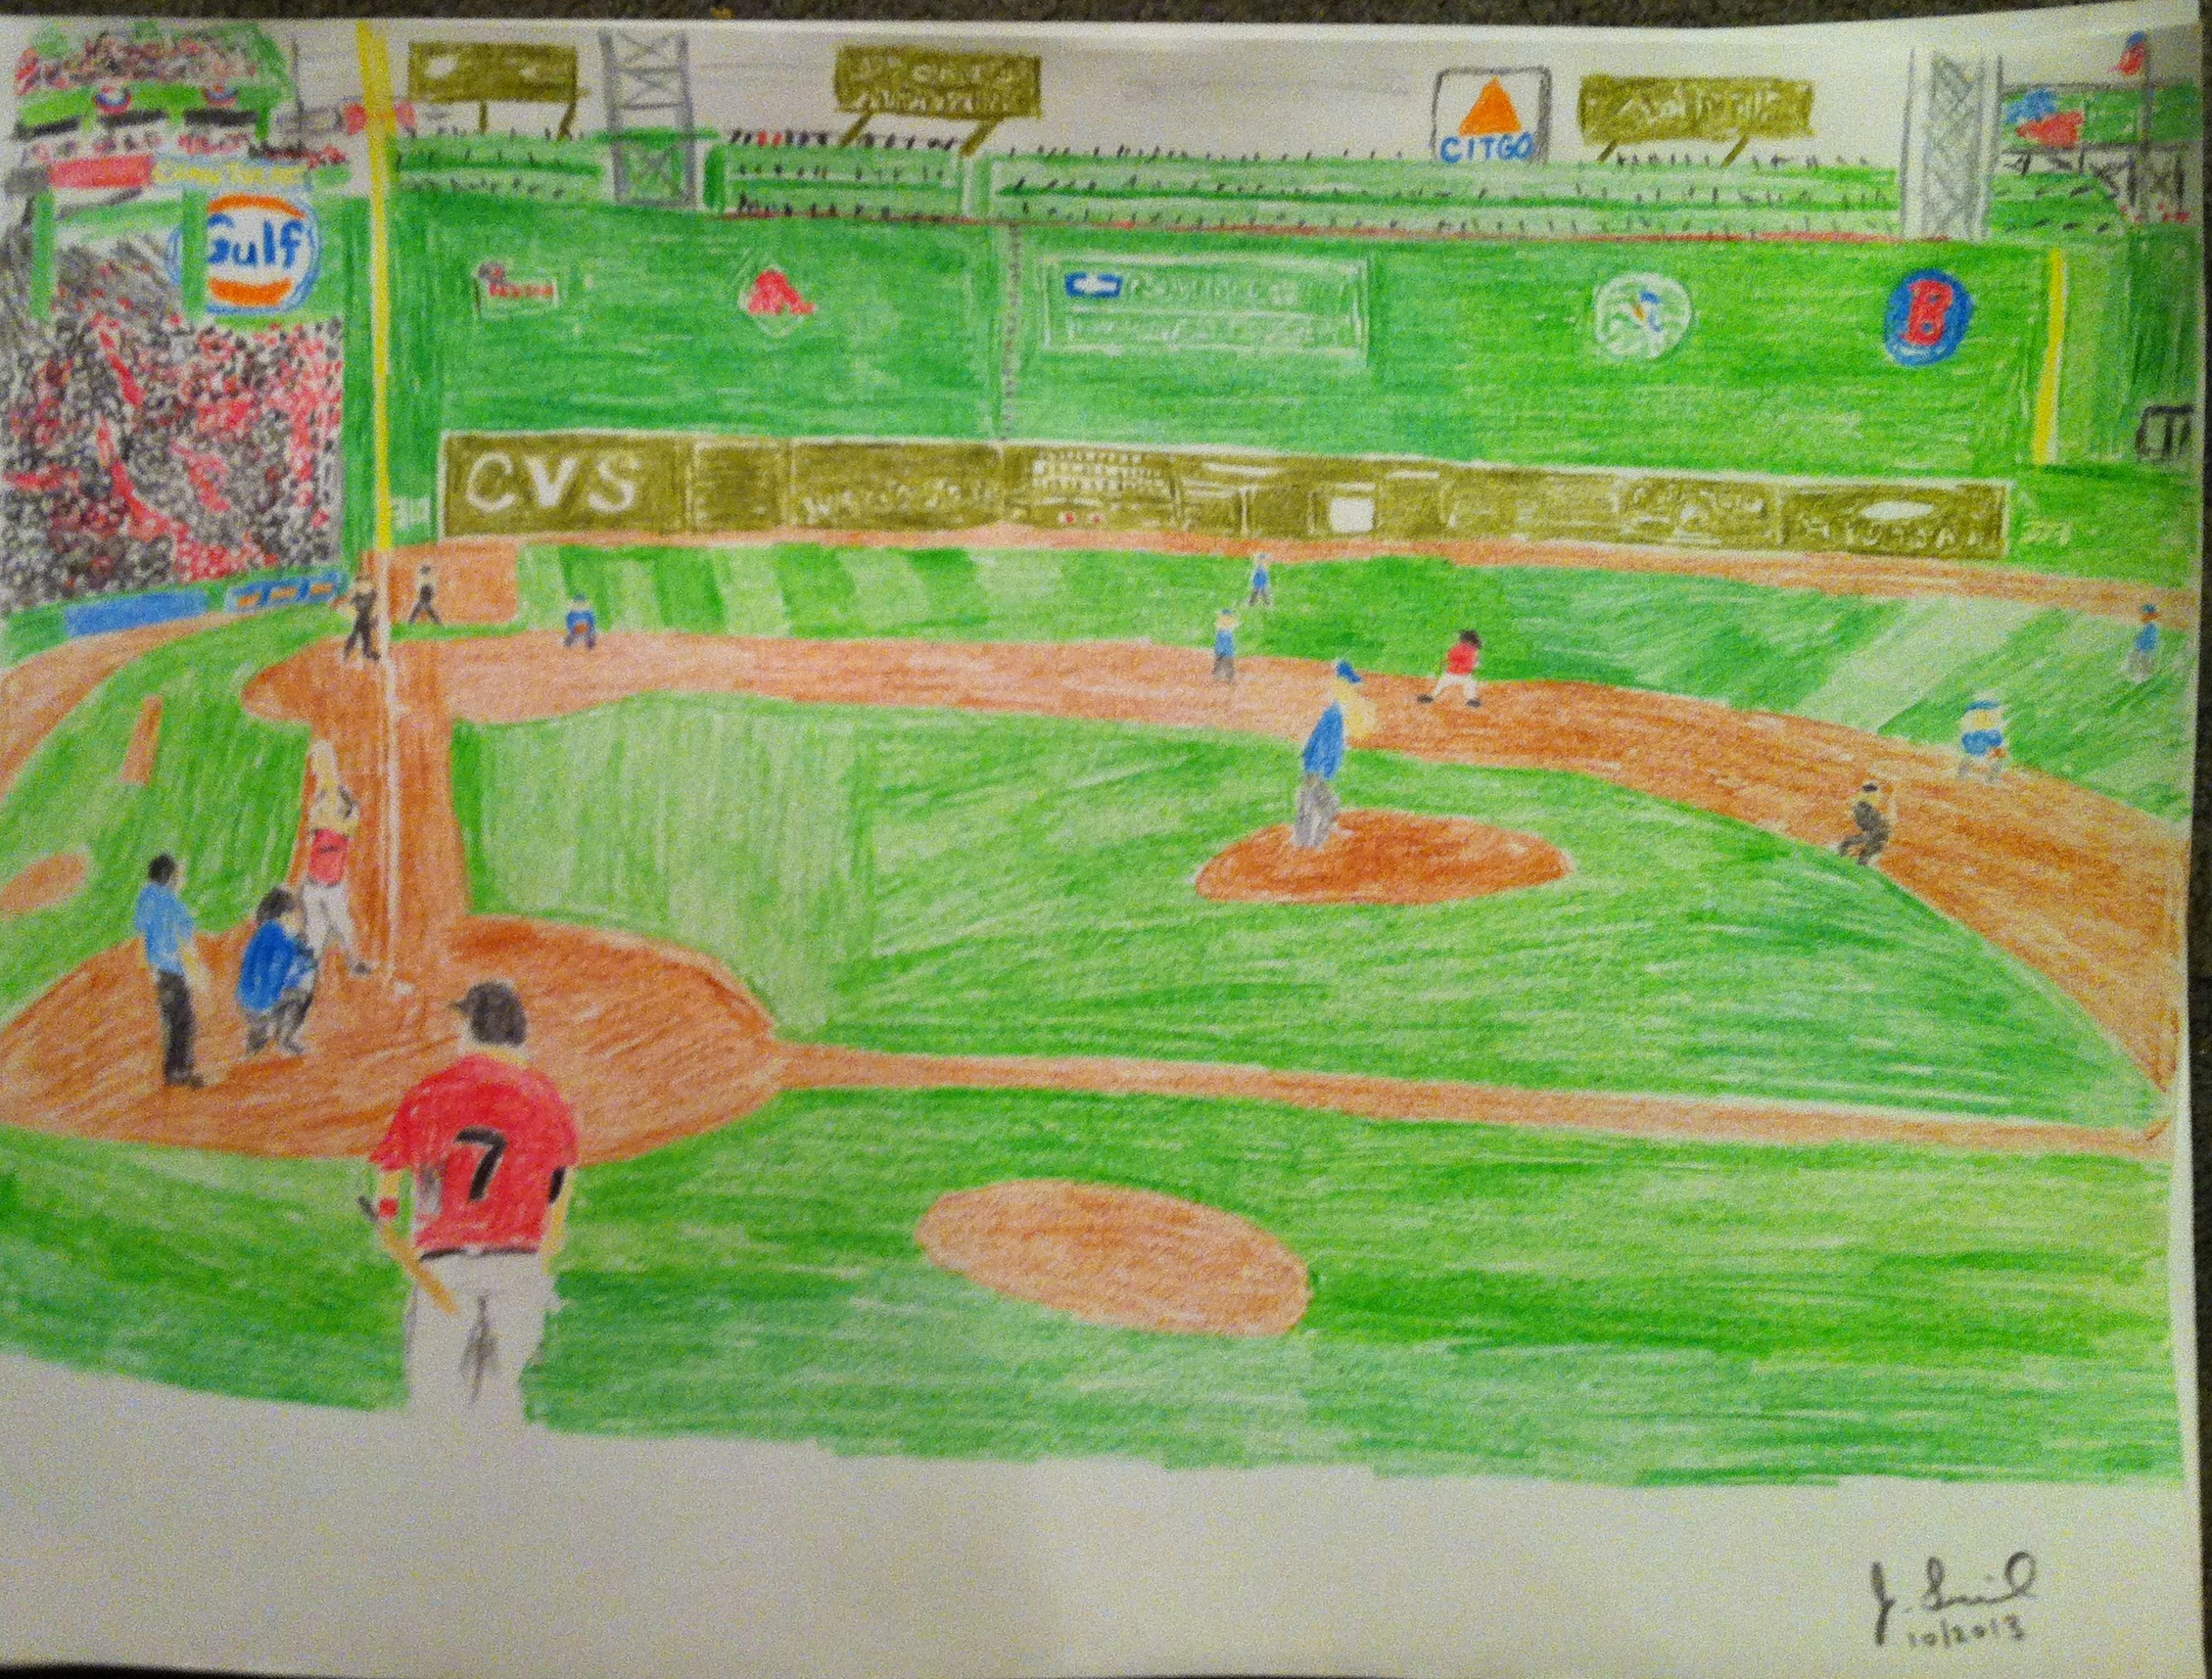 Fenway_Drawn